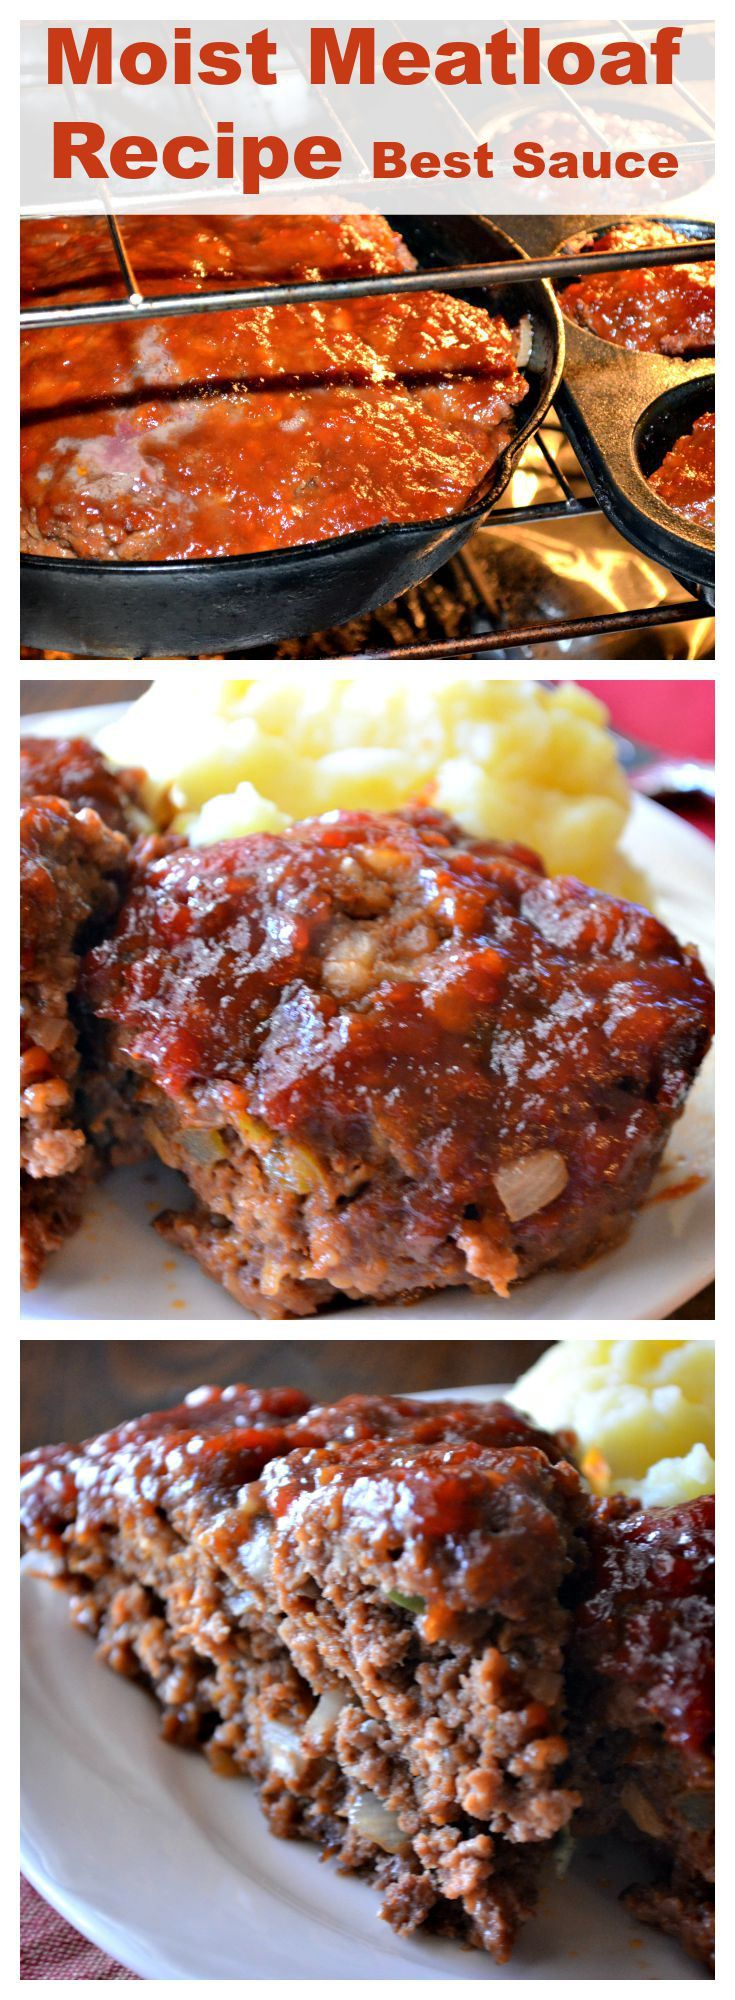 Moist Meatloaf Recipe Best Sauce ~ This meatloaf is the best ever... Extremely moist and flavorful.